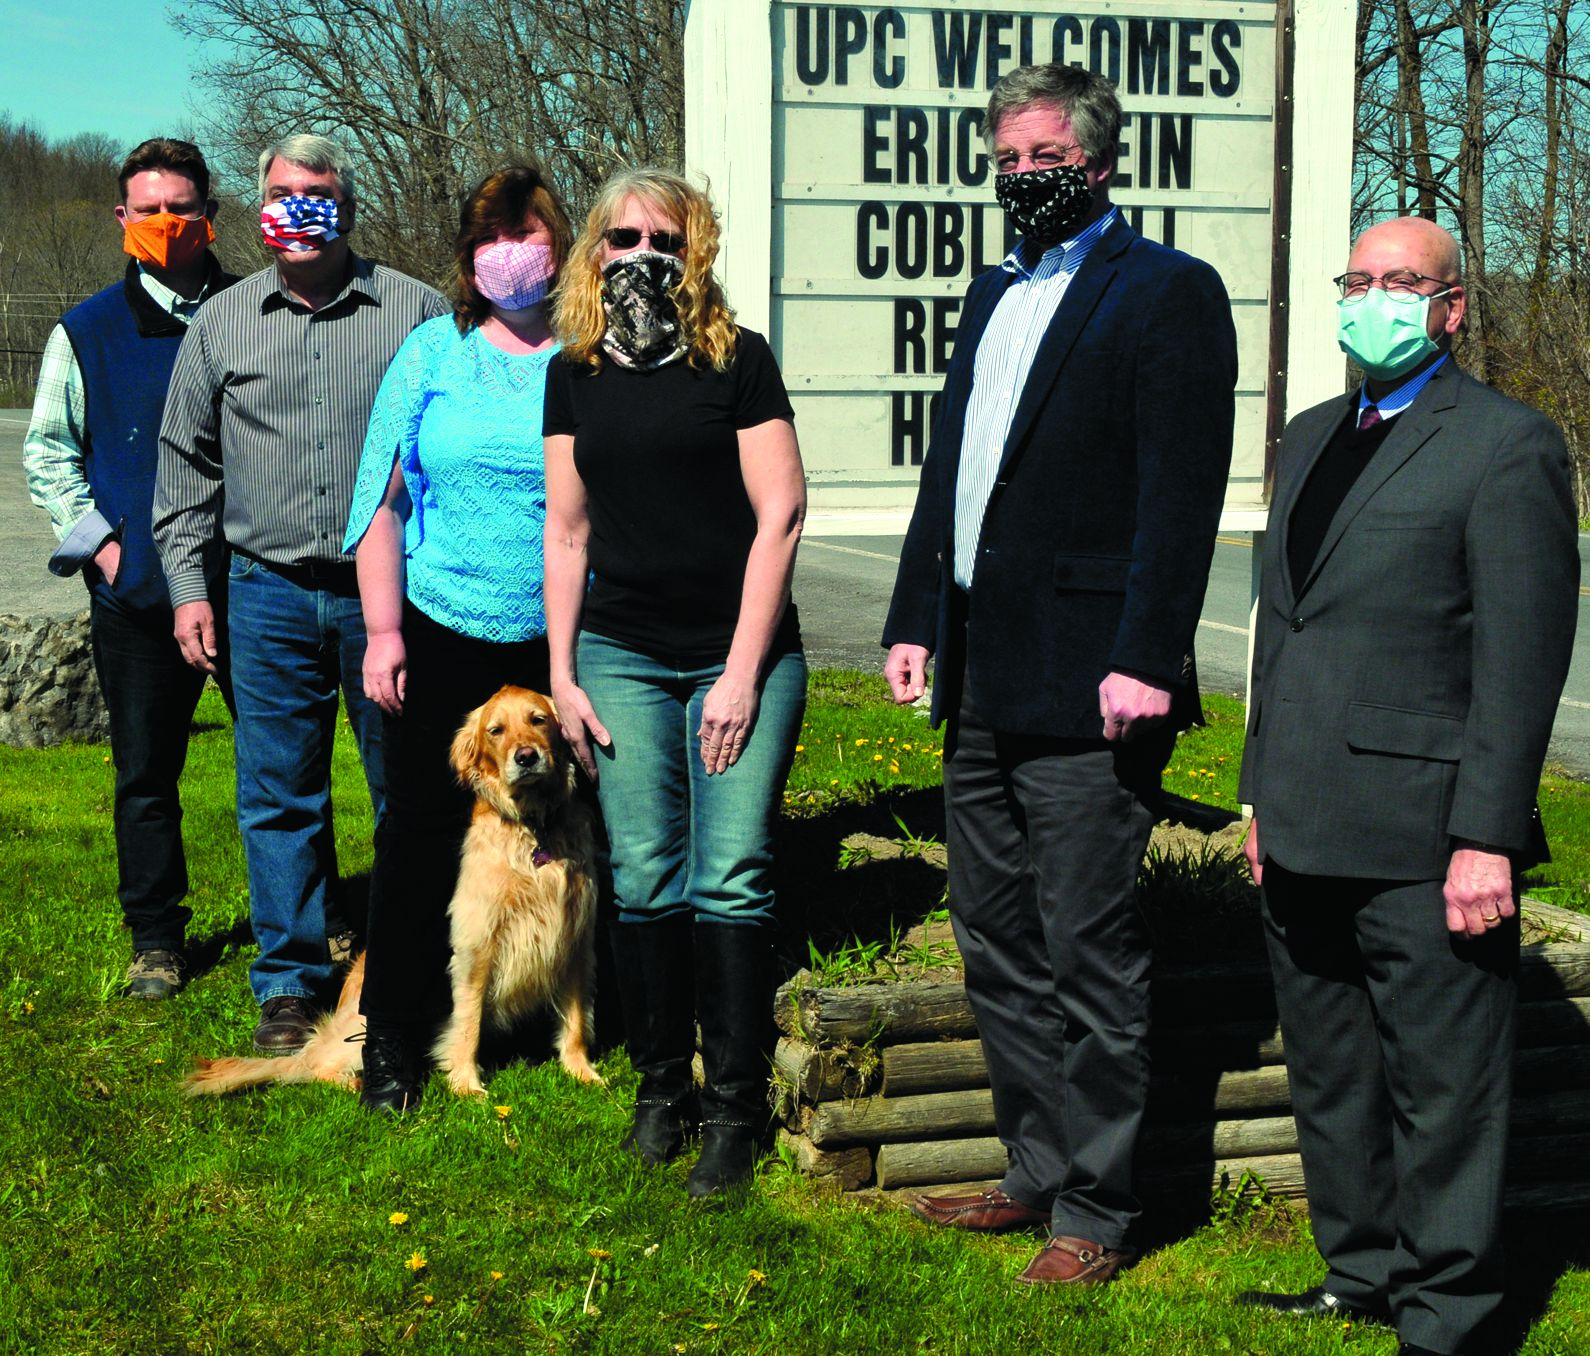 Universal Plastics pitches in with face shields